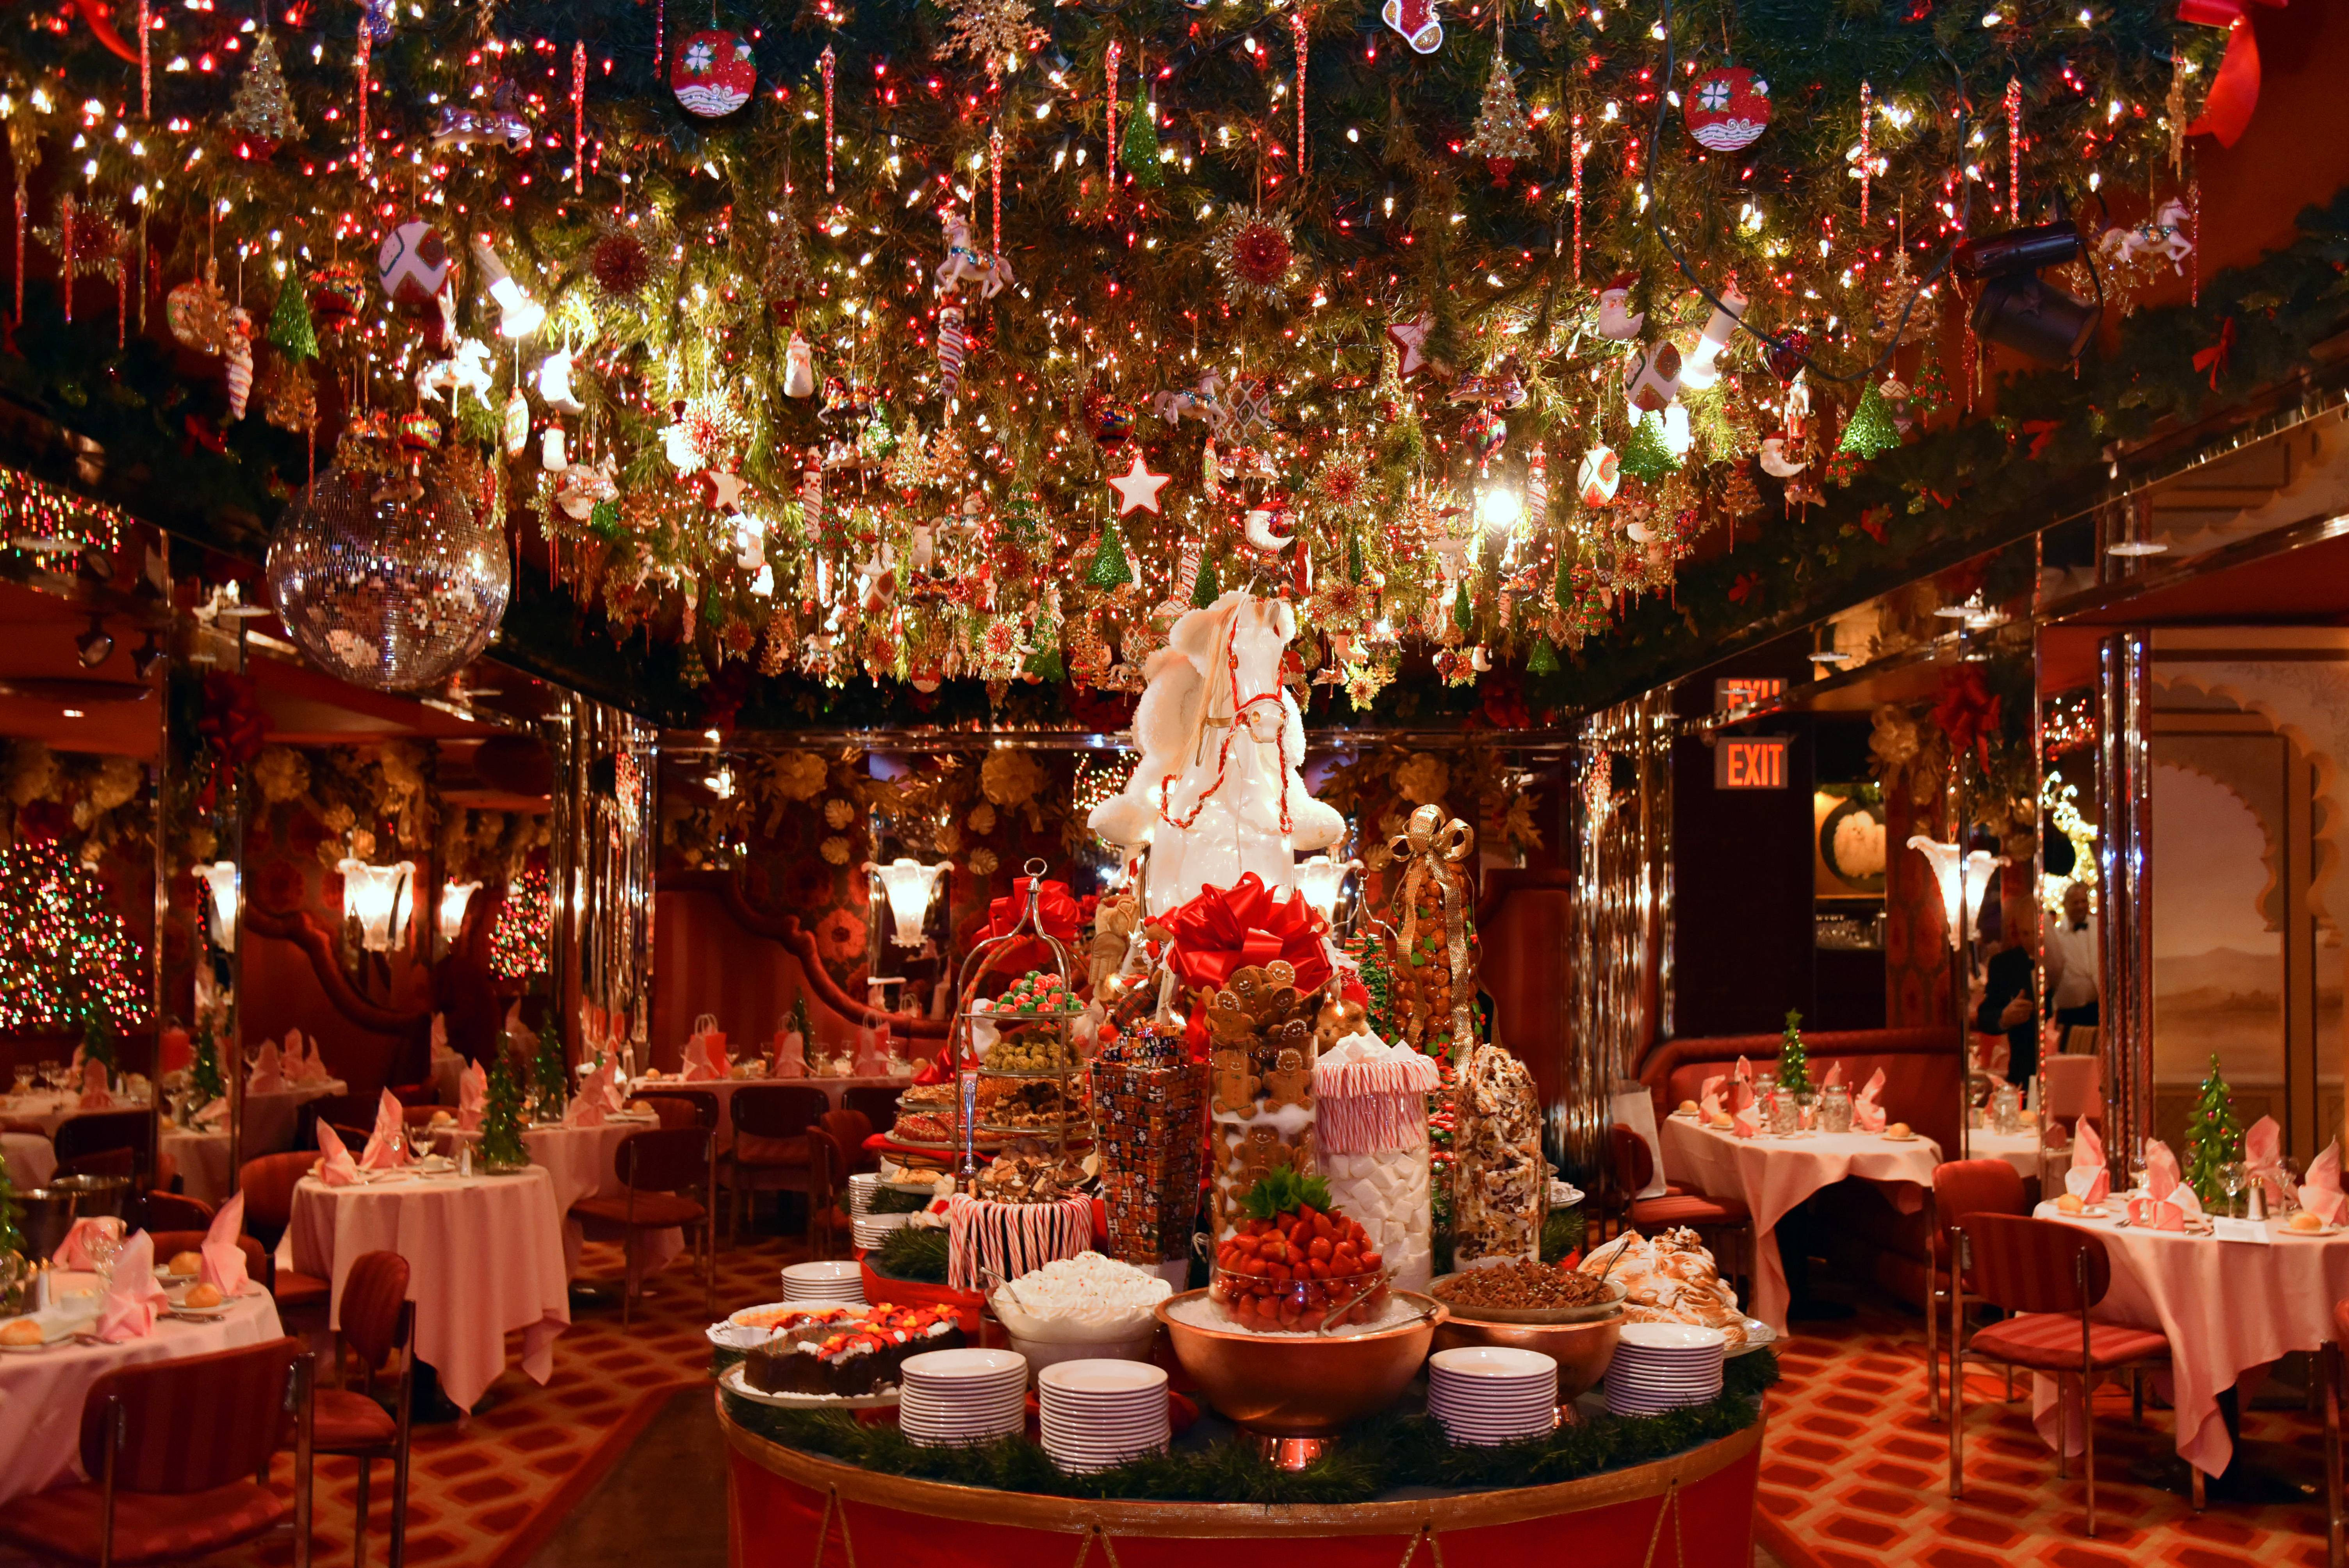 5 Spots With The Most Over the Top Holiday Décor in NYC